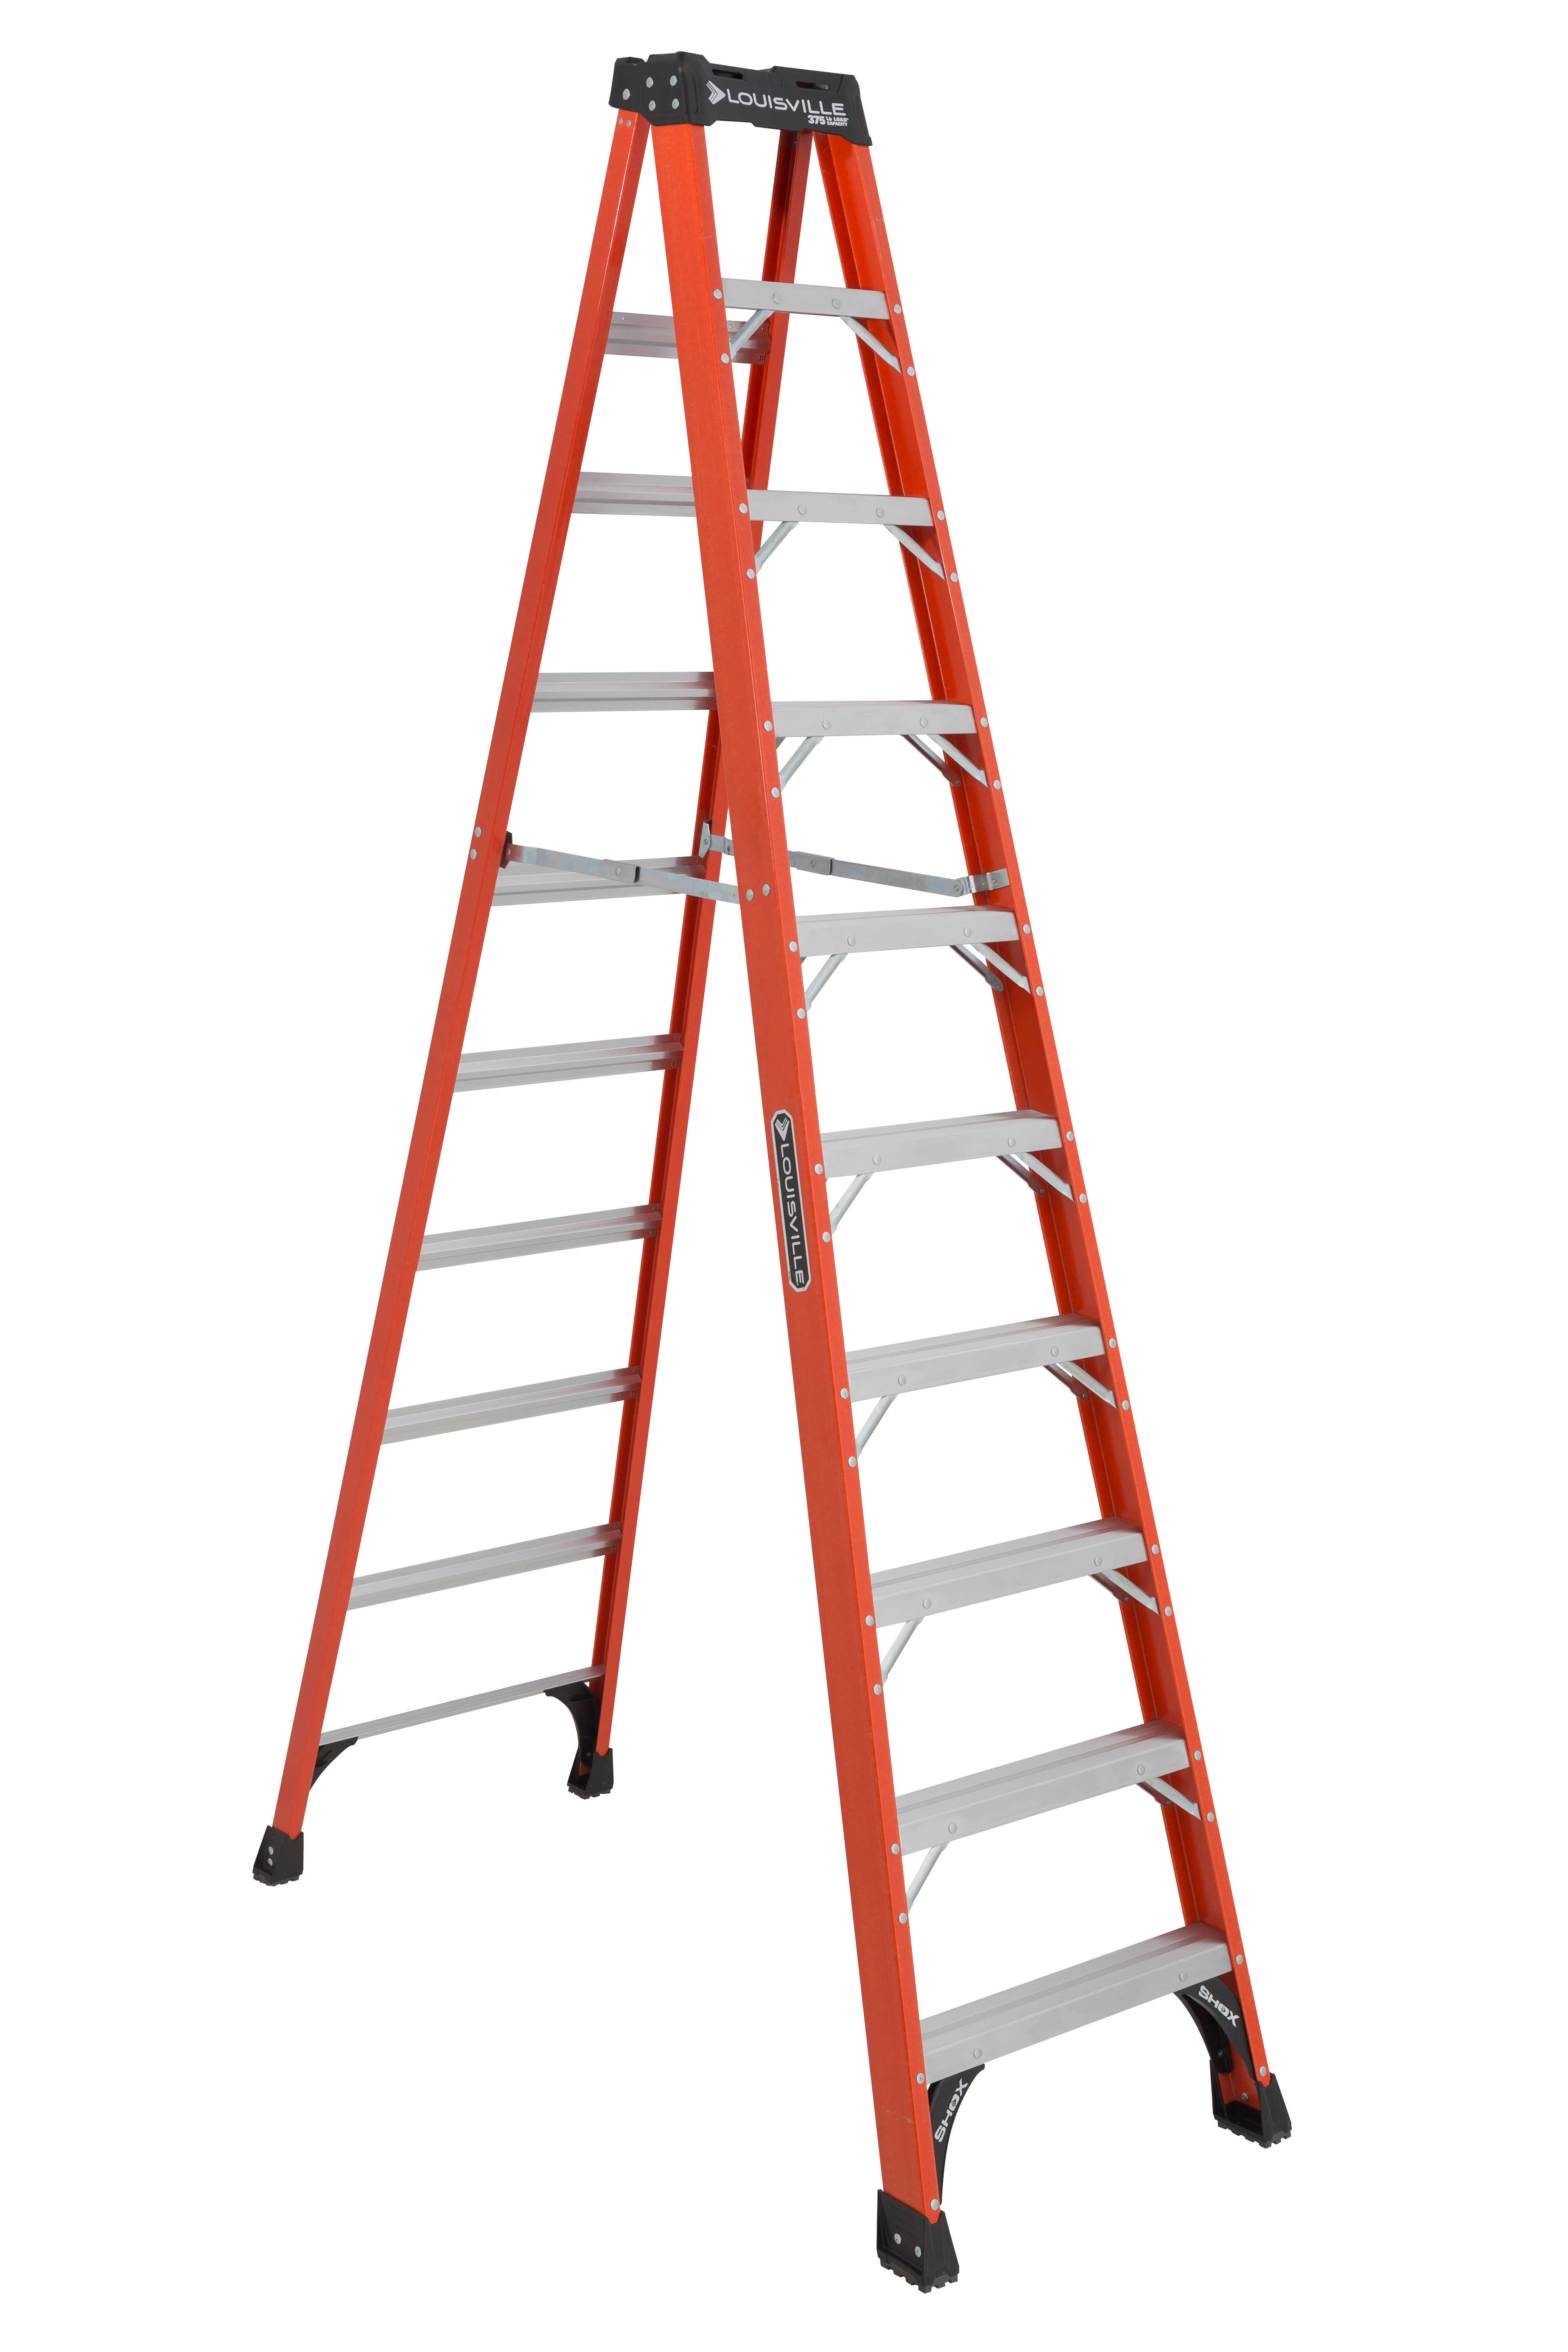 Louisville Ladder FS1410HD 10 ft. Fiberglass Step Ladder,Type IAA, 375 lbs Load Capacity